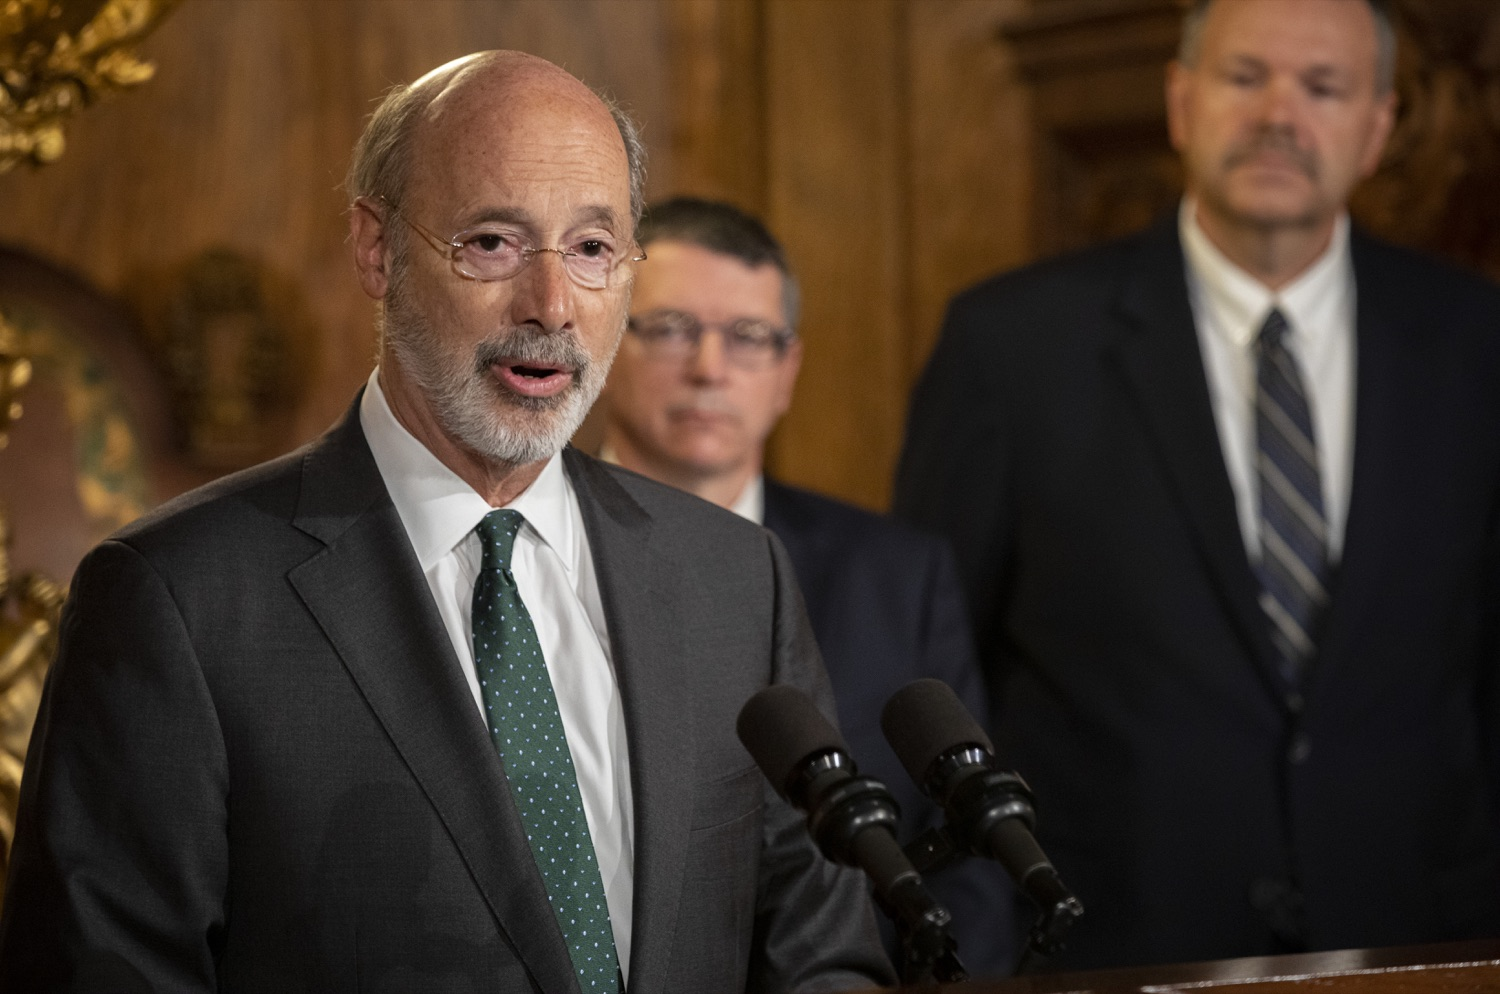 "<a href=""http://filesource.abacast.com/commonwealthofpa/photo/17469_GOV_ClimateChange_DE_004.jpg"" target=""_blank"">⇣ Download Photo<br></a>Governor Wolf Takes Executive Action to Combat Climate Change, Carbon Emissions"